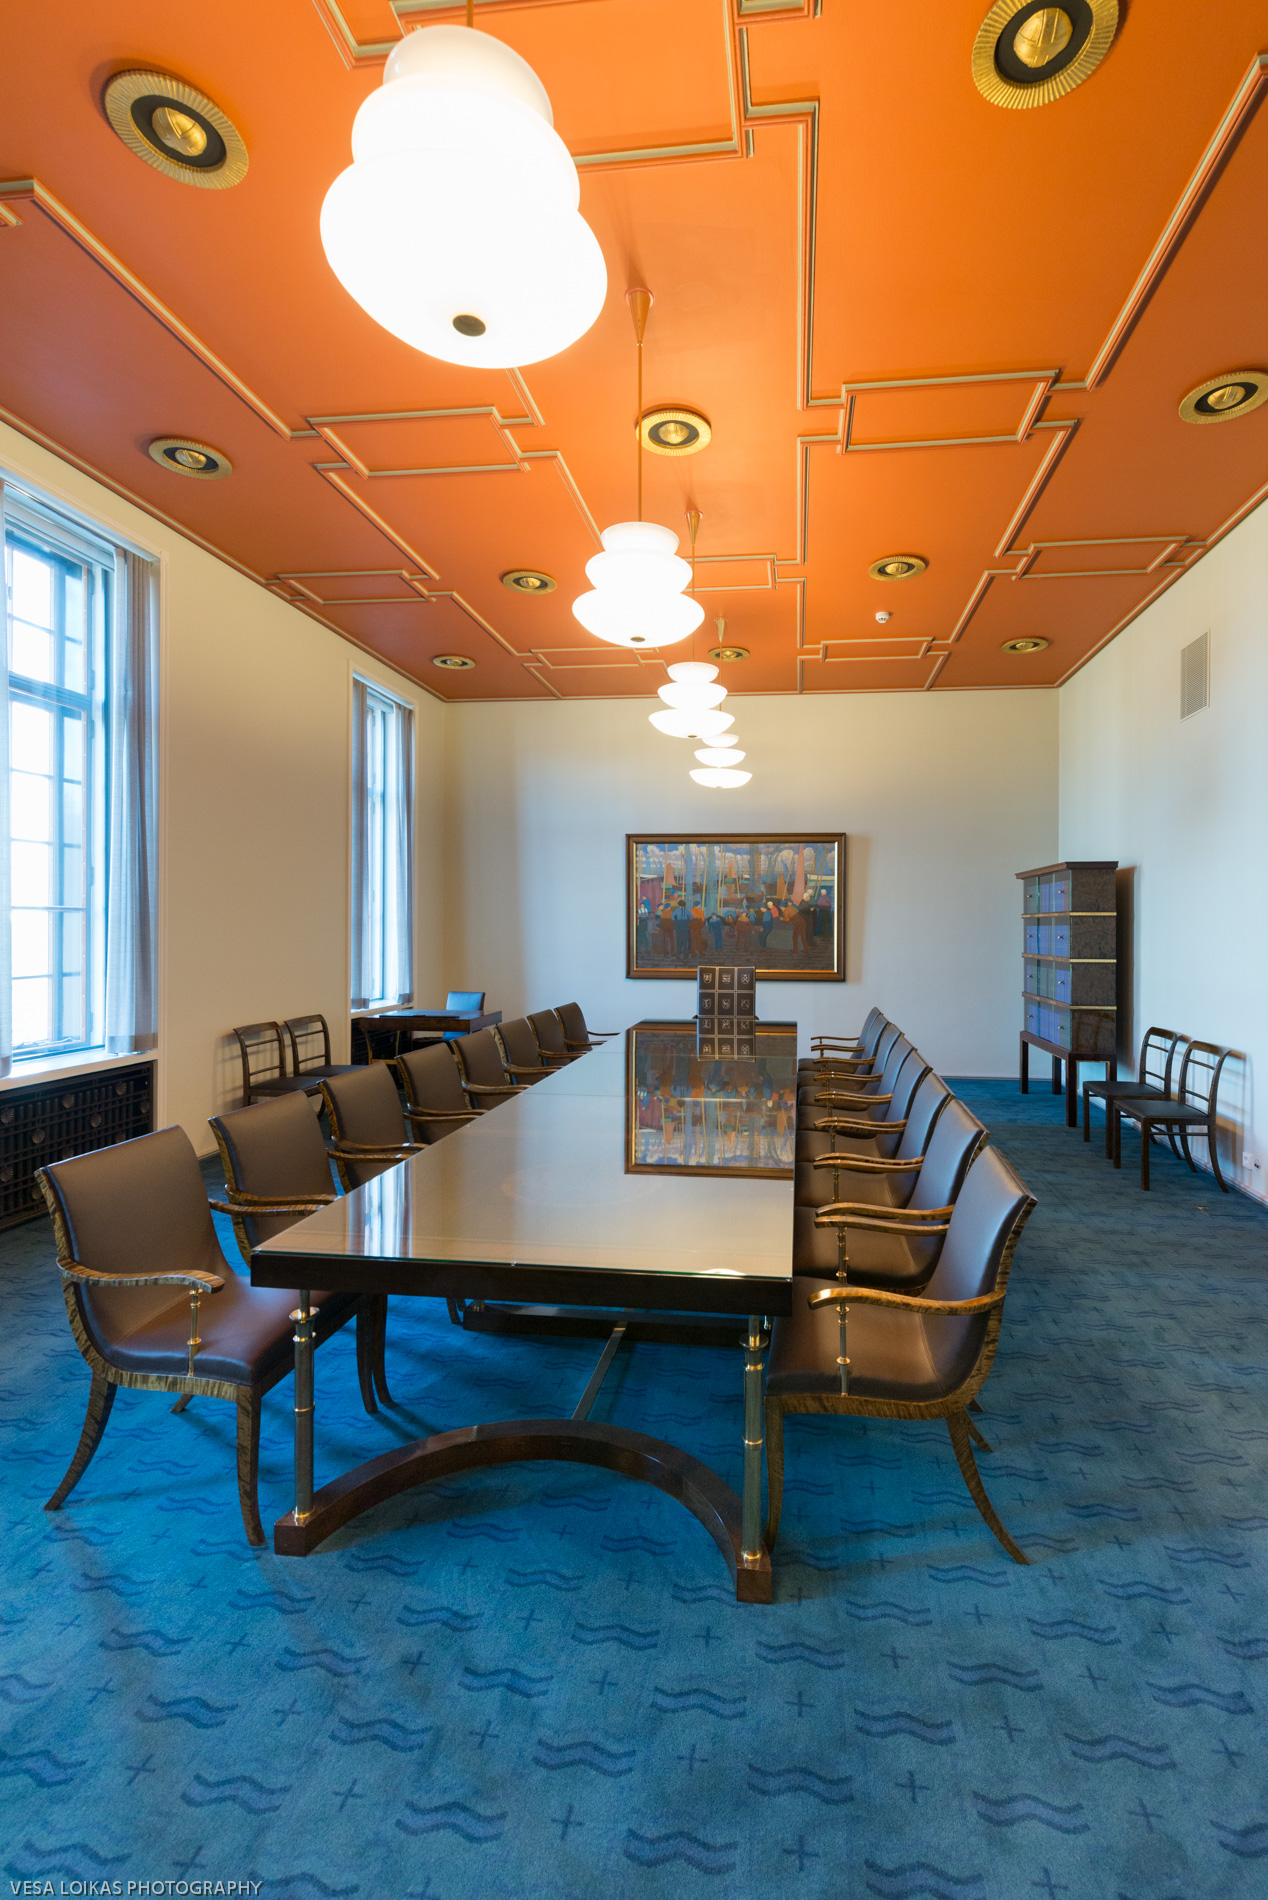 Government's Meeting Room   was designed by Arttu Brummer (1891–1951). The light fixture design were by J. S. Sirén, the ceiling decorated by Gunnar Finne and the blue carpet design by Eva Brummer (1901–2007).